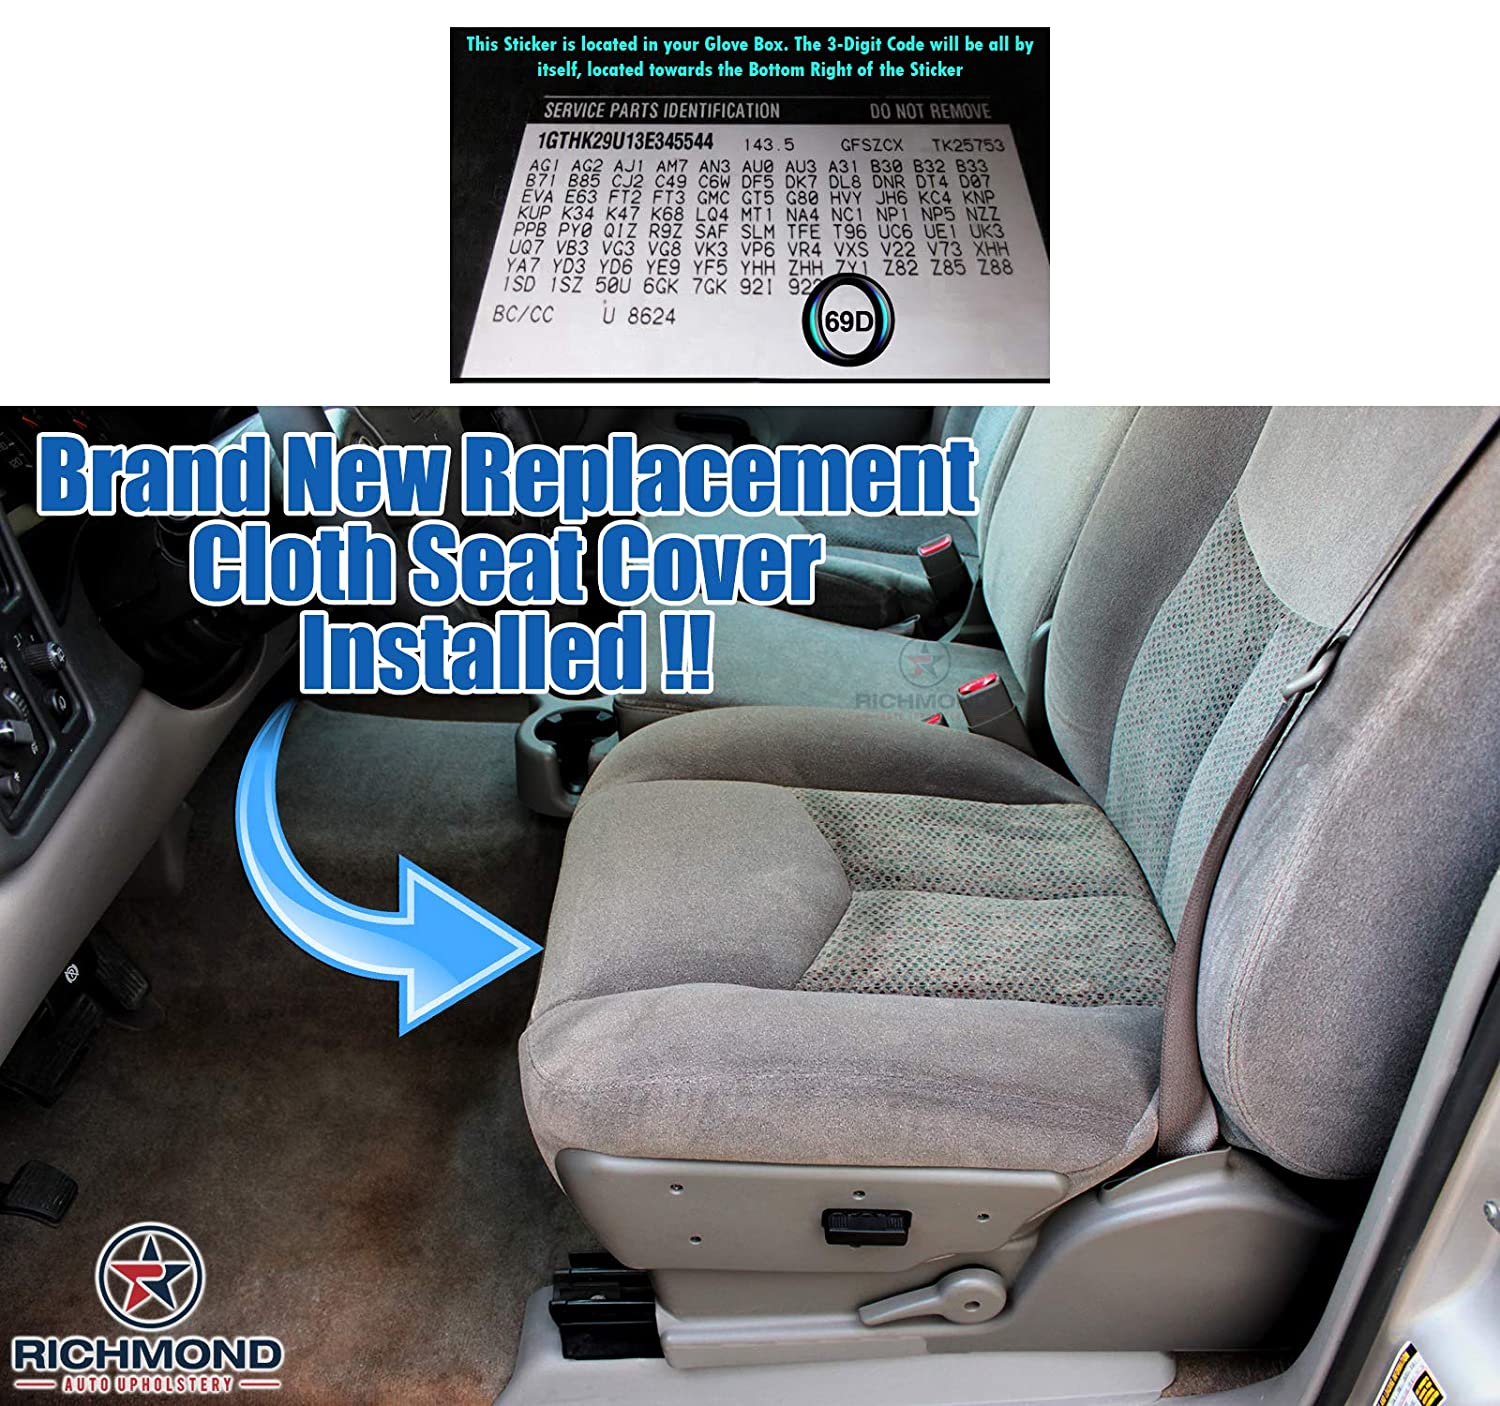 Driver Side Bottom Replacement Cloth Seat Cover 69D Gray Richmond Auto Upholstery Compatible with 2003 2004 2005 2006 Chevy Silverado 2500 2500HD LS LT HD Z71